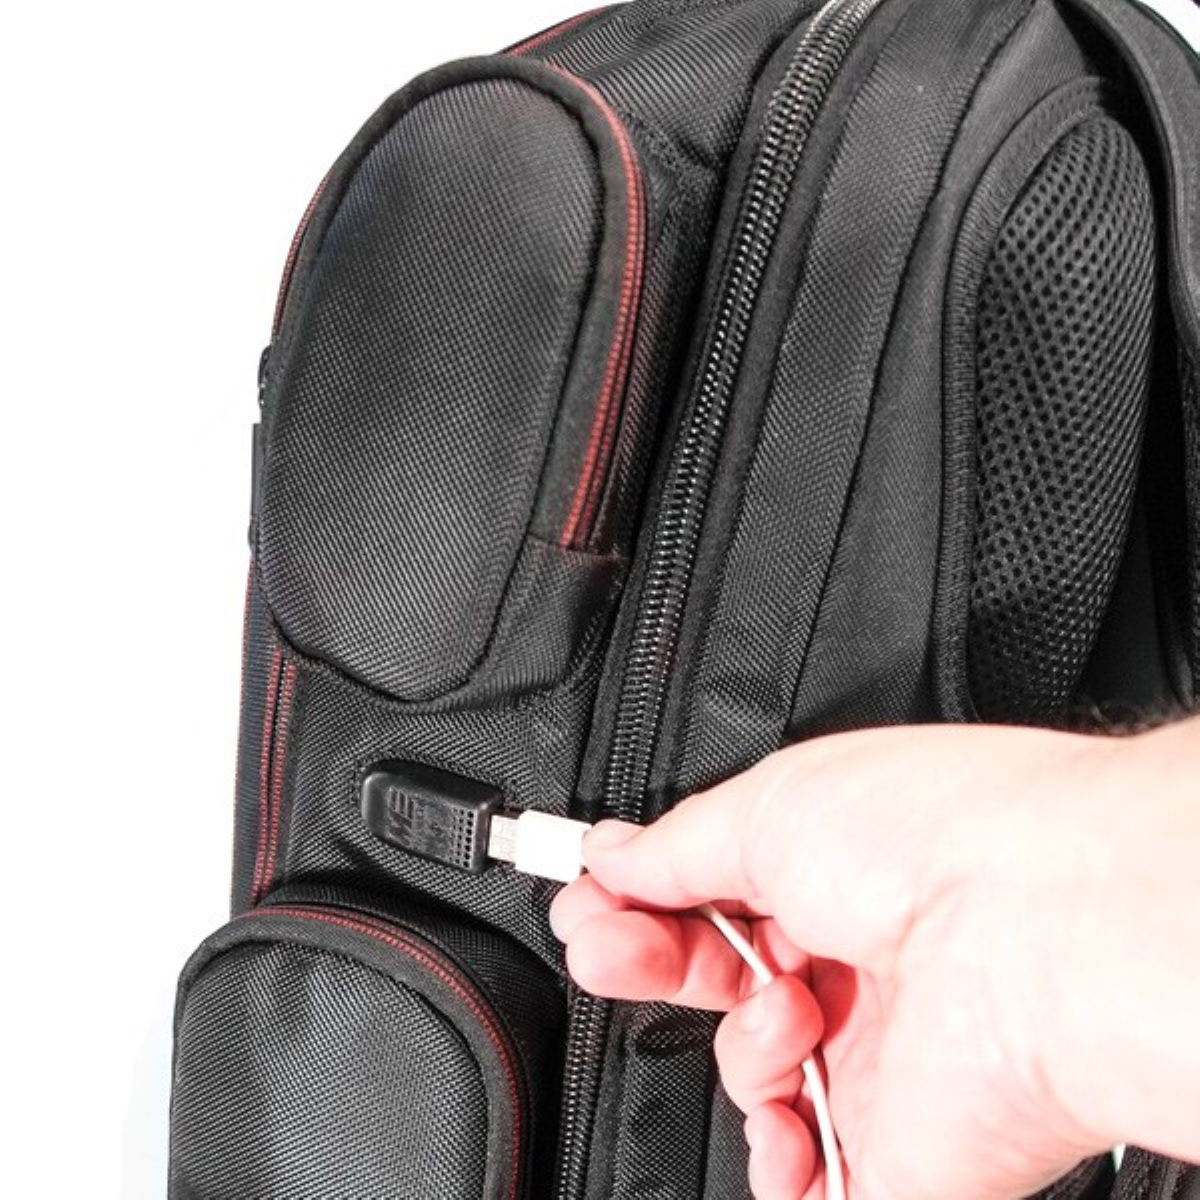 Core Gaming Backpack - External Built-In USB ChargePort